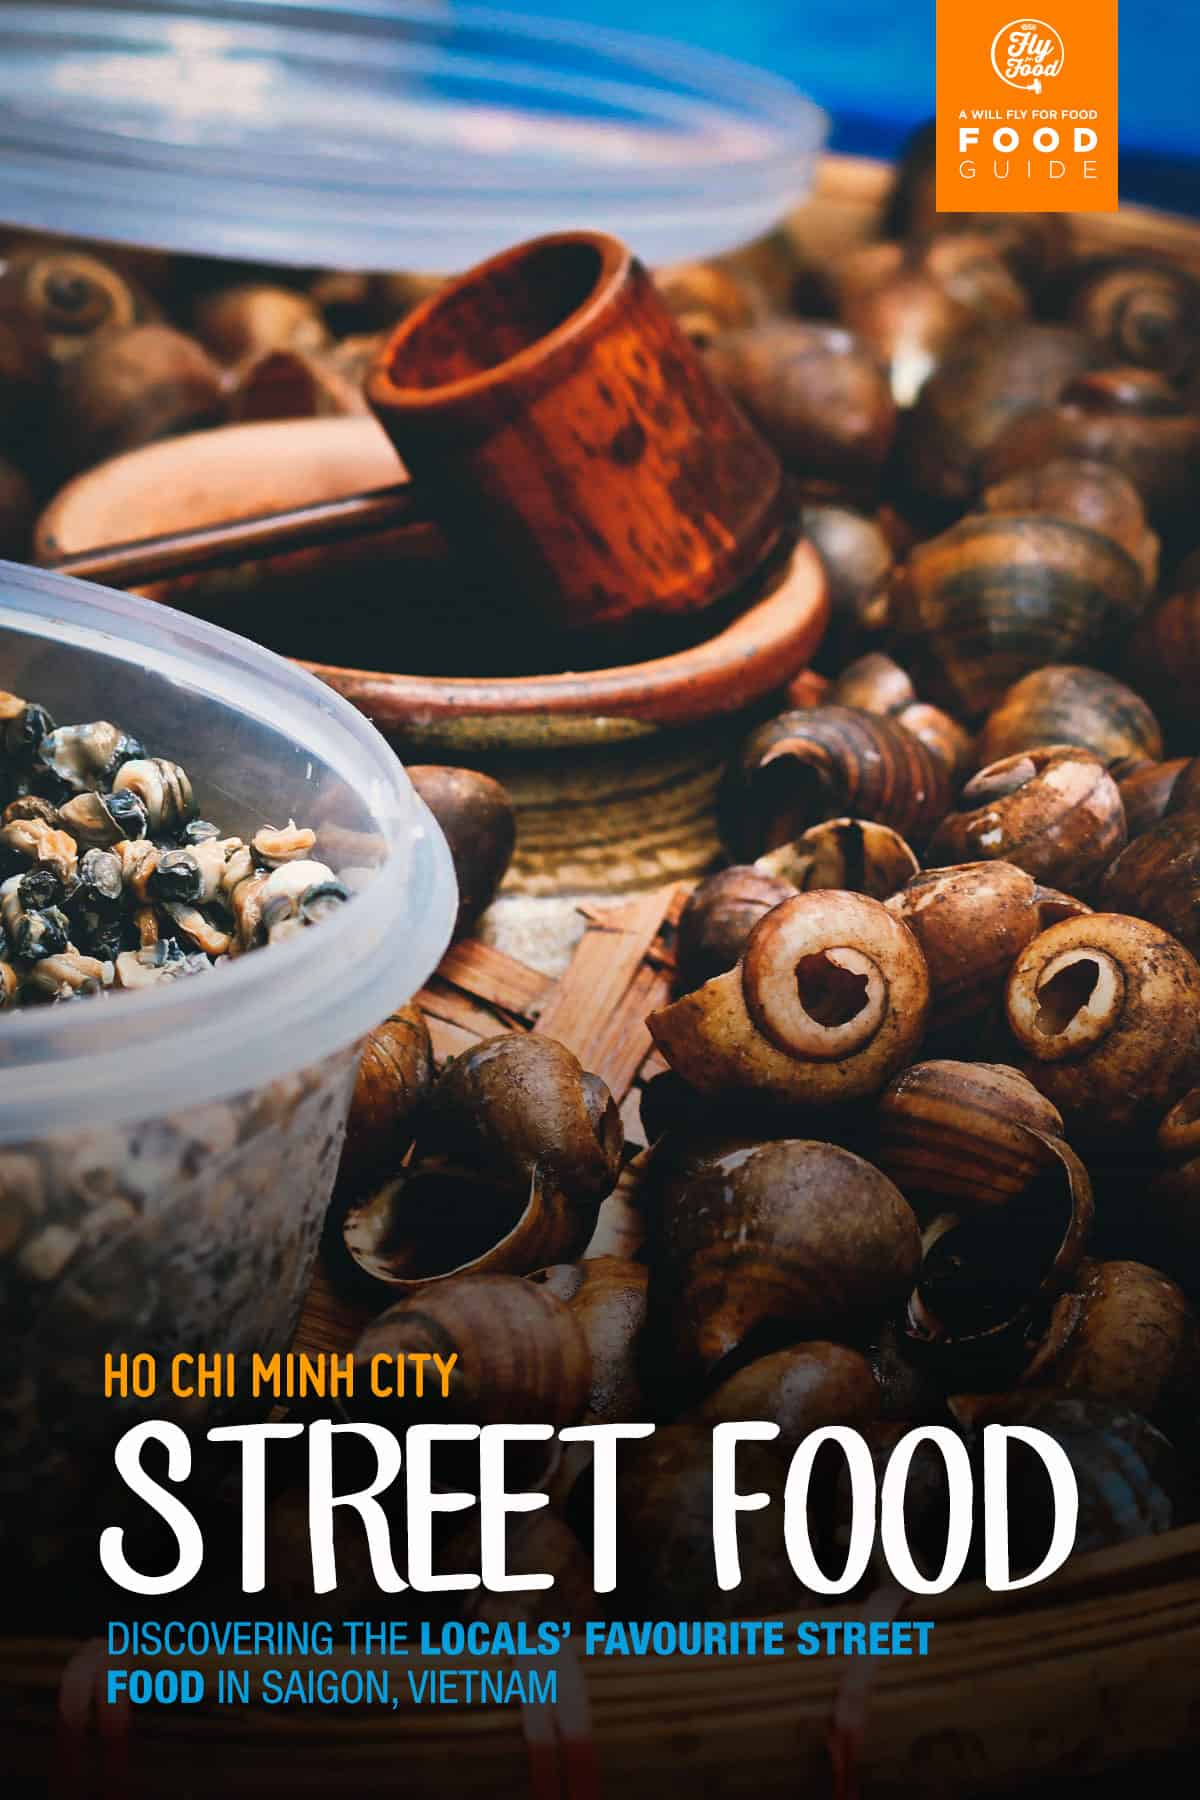 Street food vendor selling snails